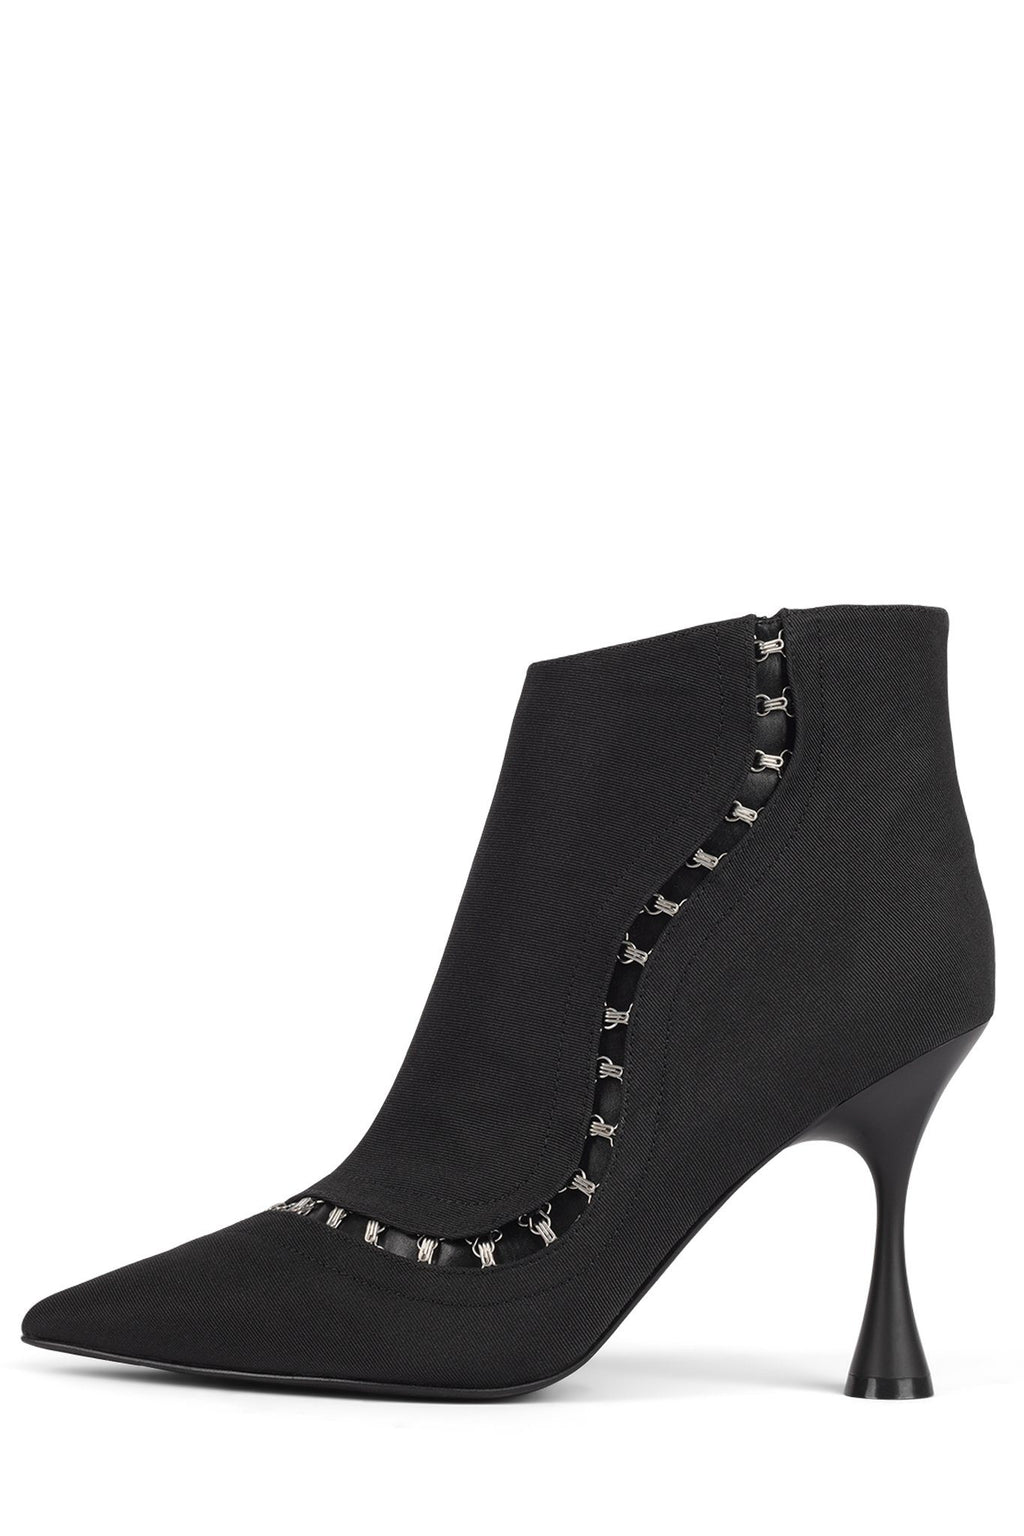 GIRDLE Heeled Bootie ST Black Faille 6